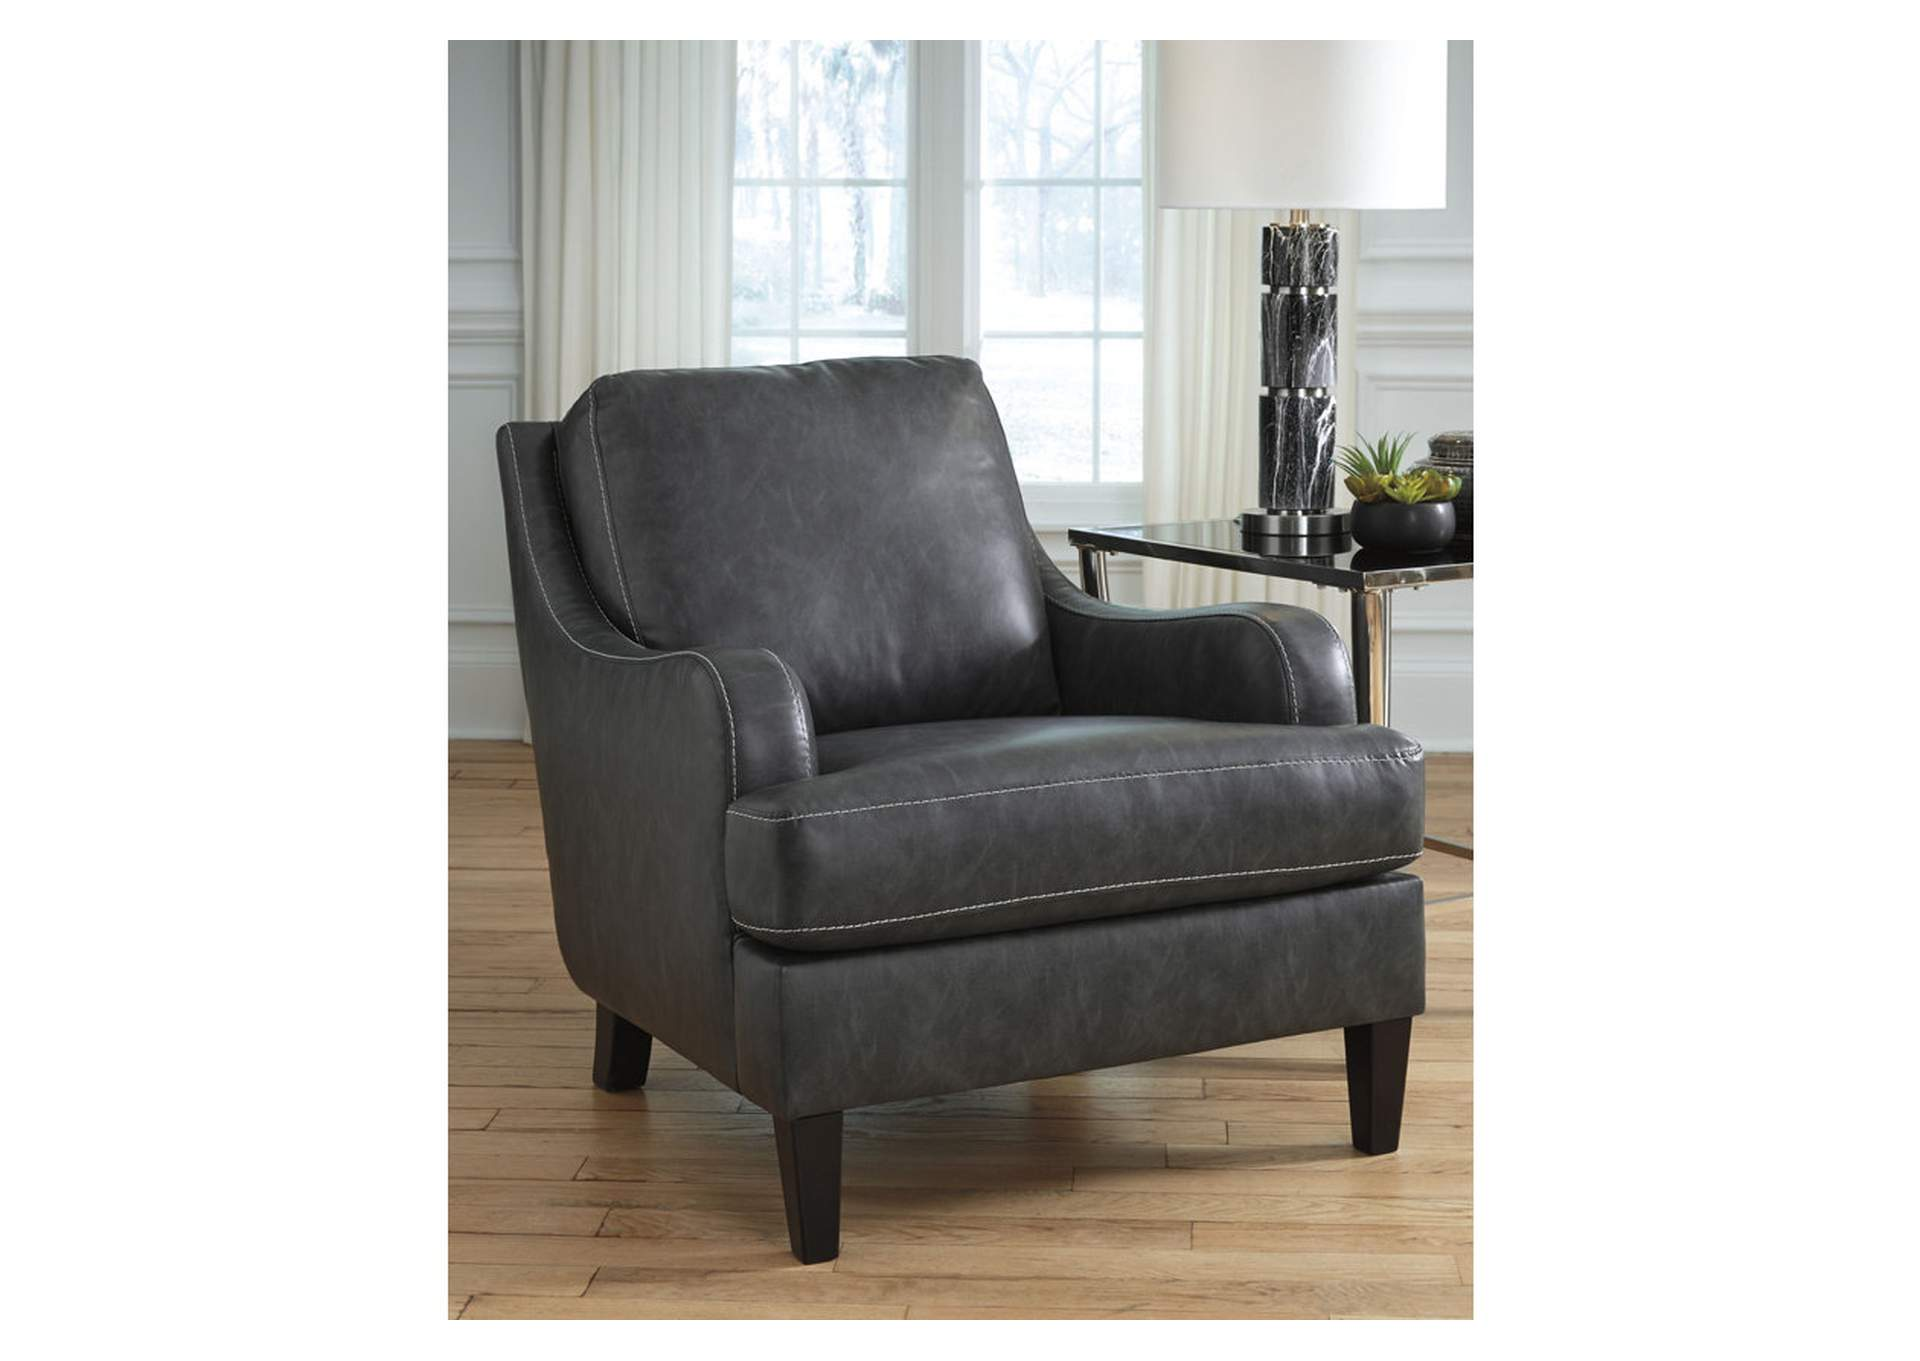 Tirolo Dark Gray Accent Chair,Signature Design By Ashley